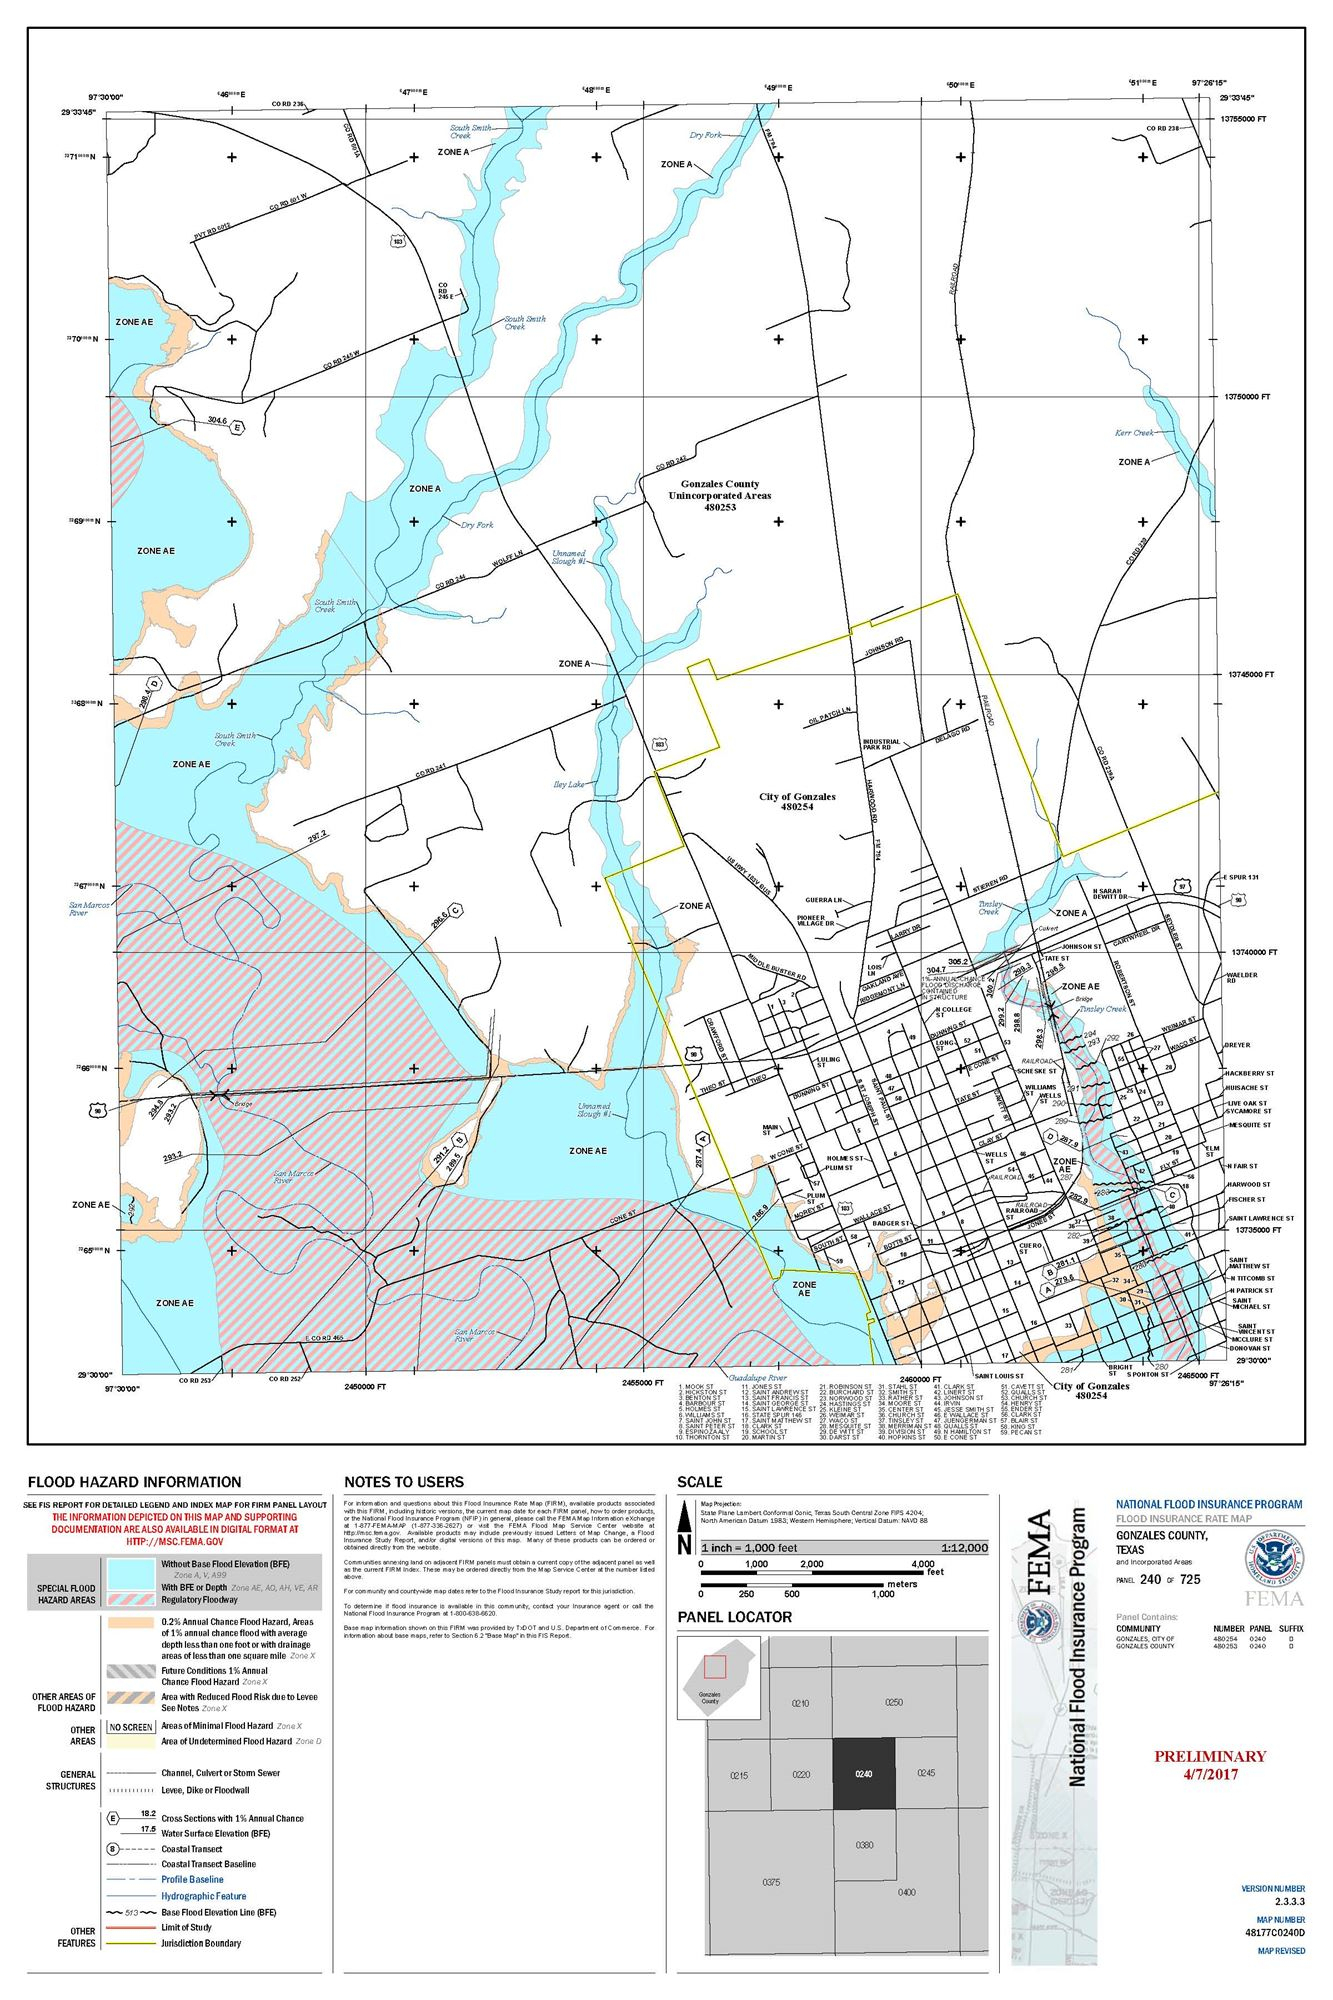 Preliminary Flood Map - Luling Texas Map